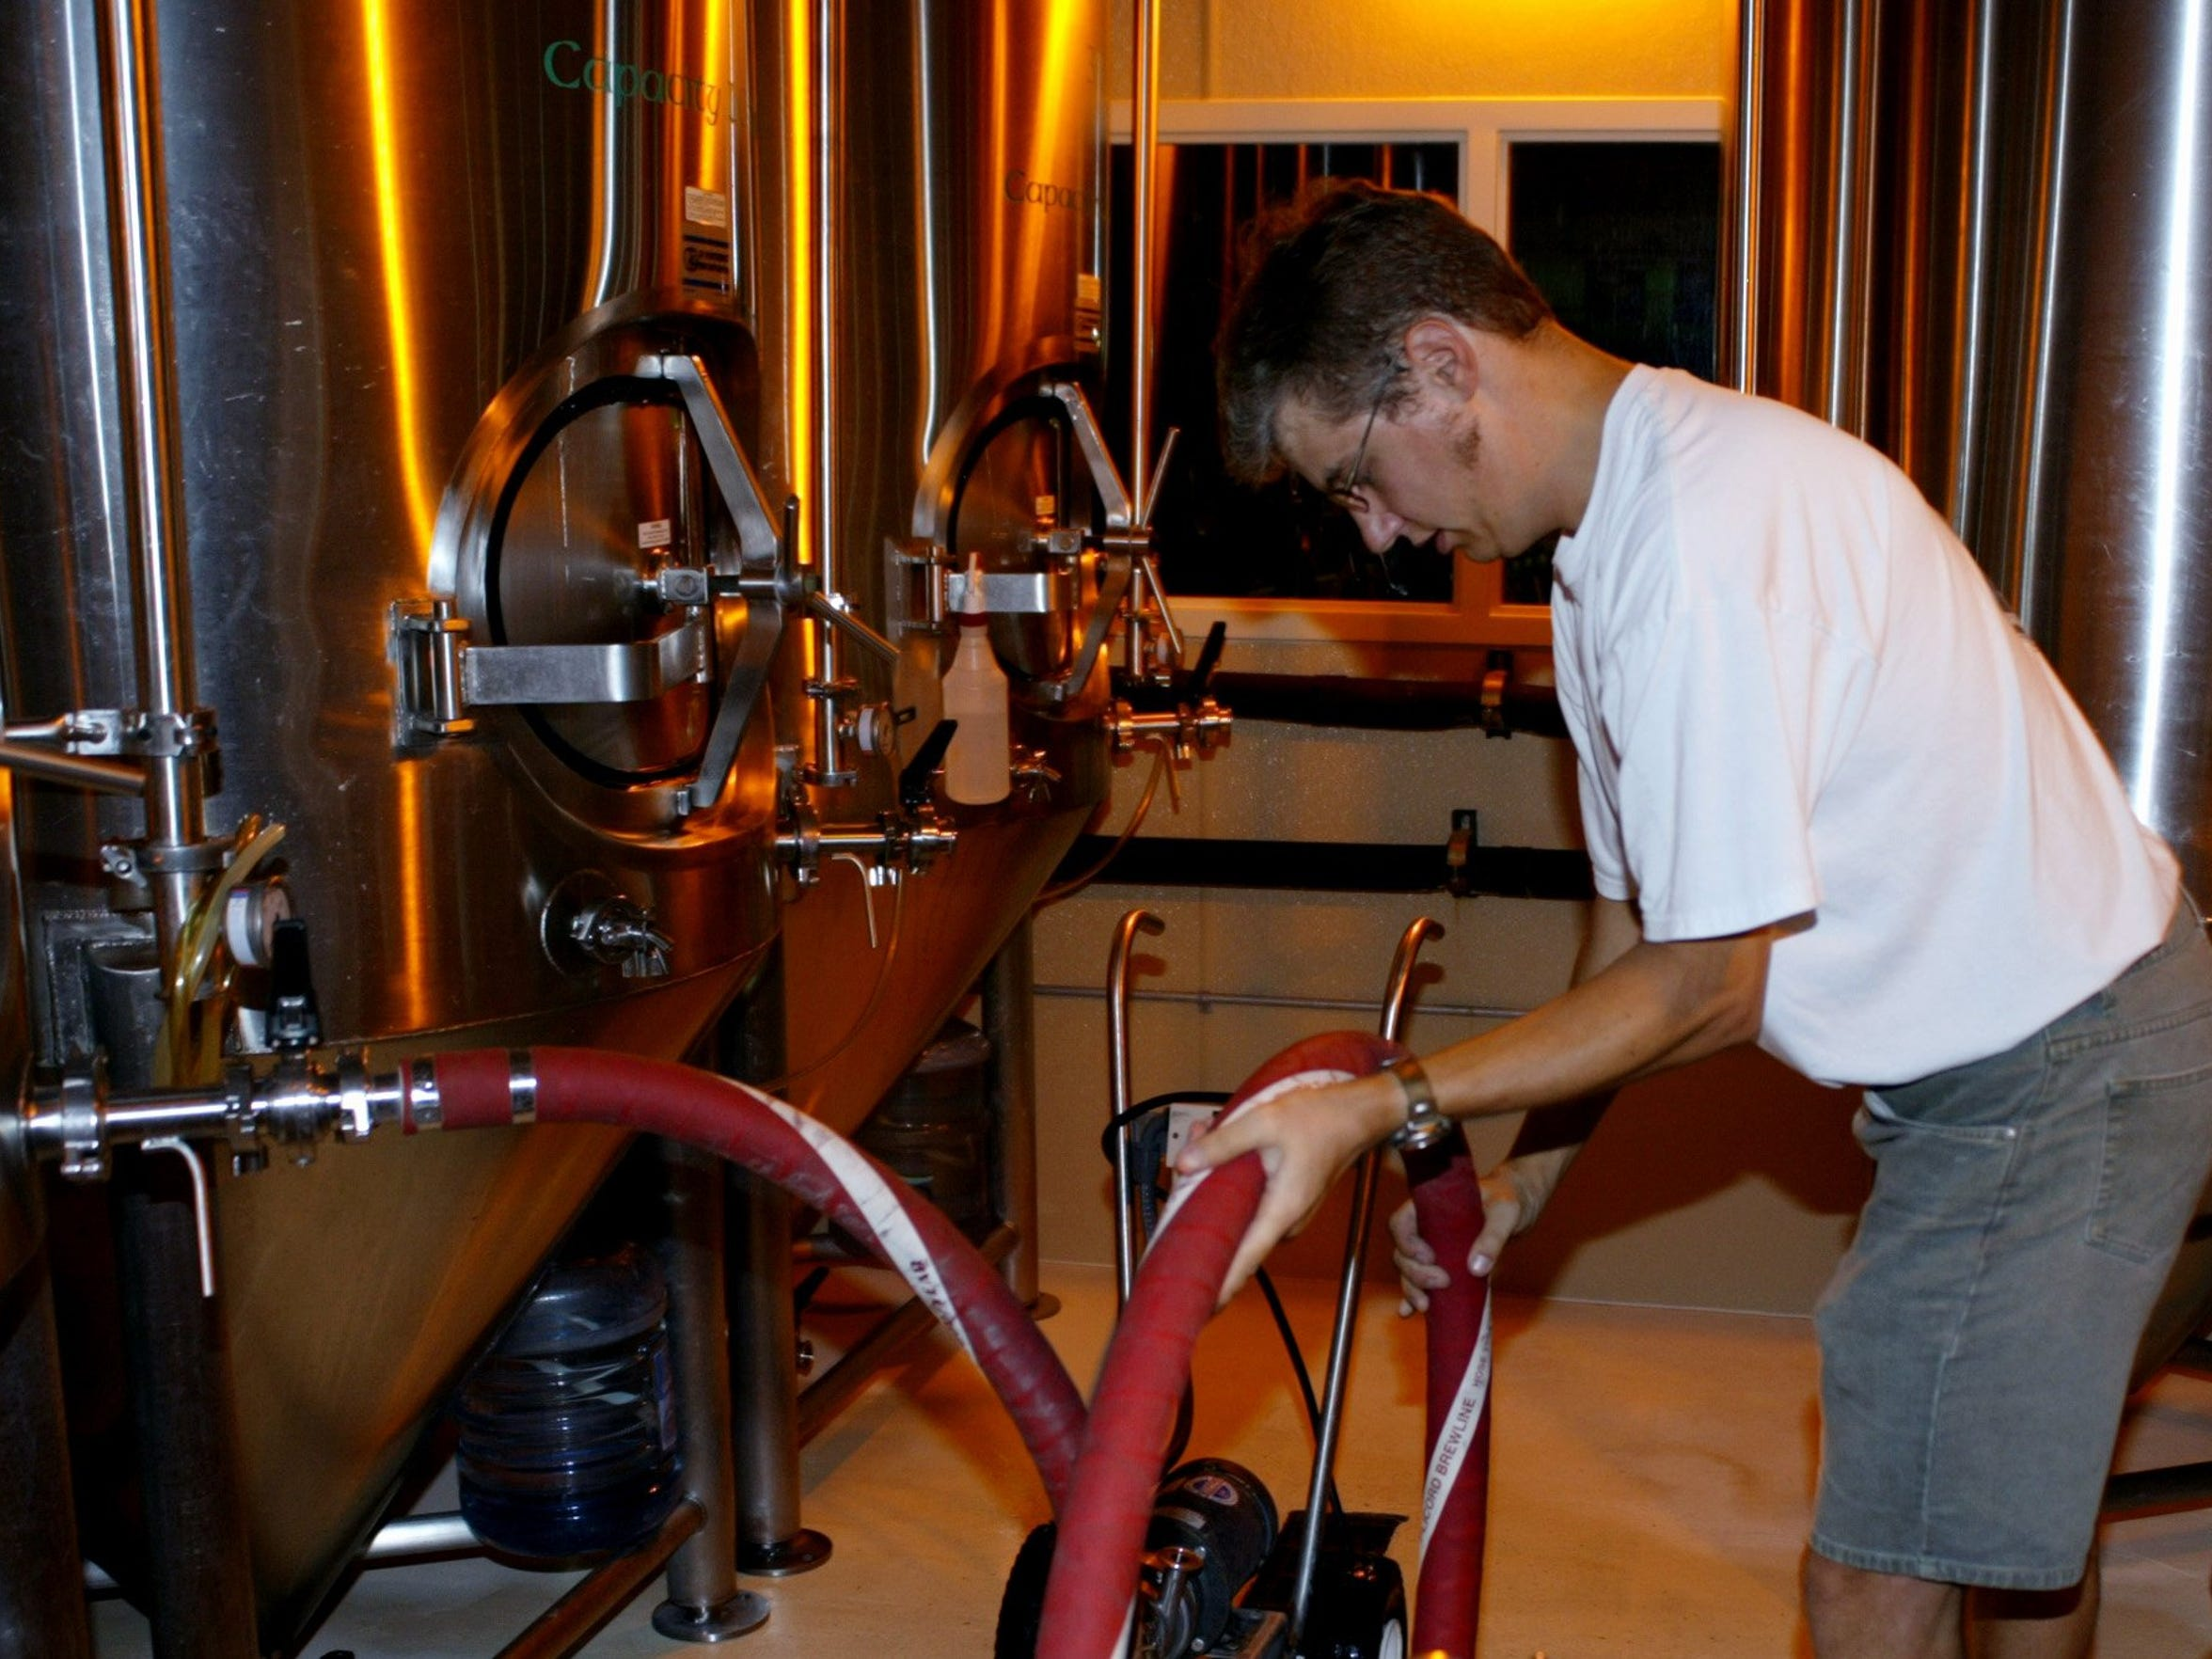 Chris Laumb, 37, St. Cloud, works in O'Hara's brewery